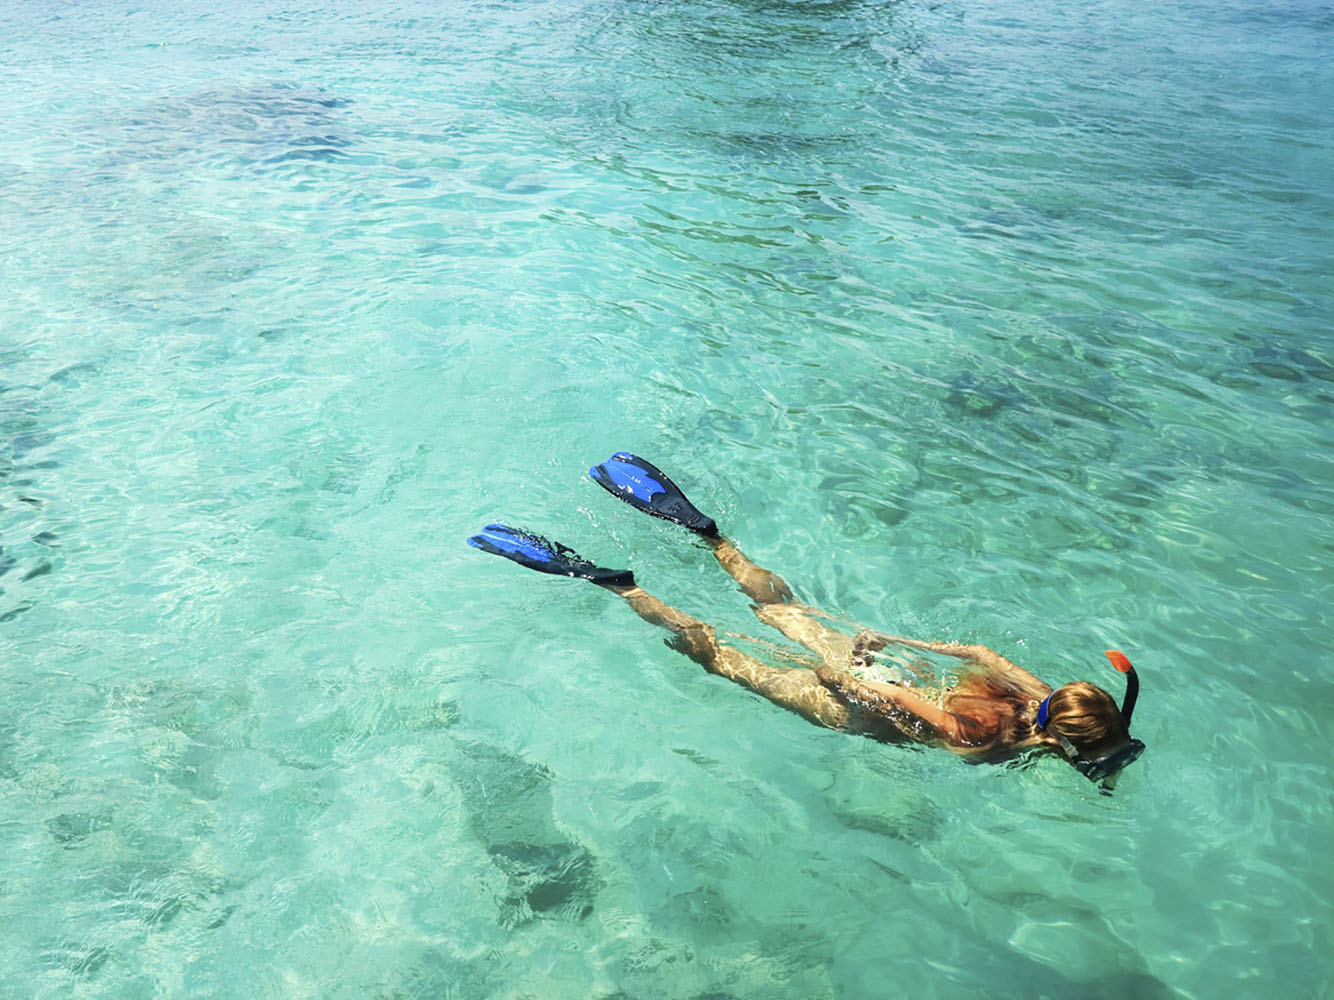 Looking for adventure? Choose a cruise destination with great snorkeling, like Mexico or Australia.